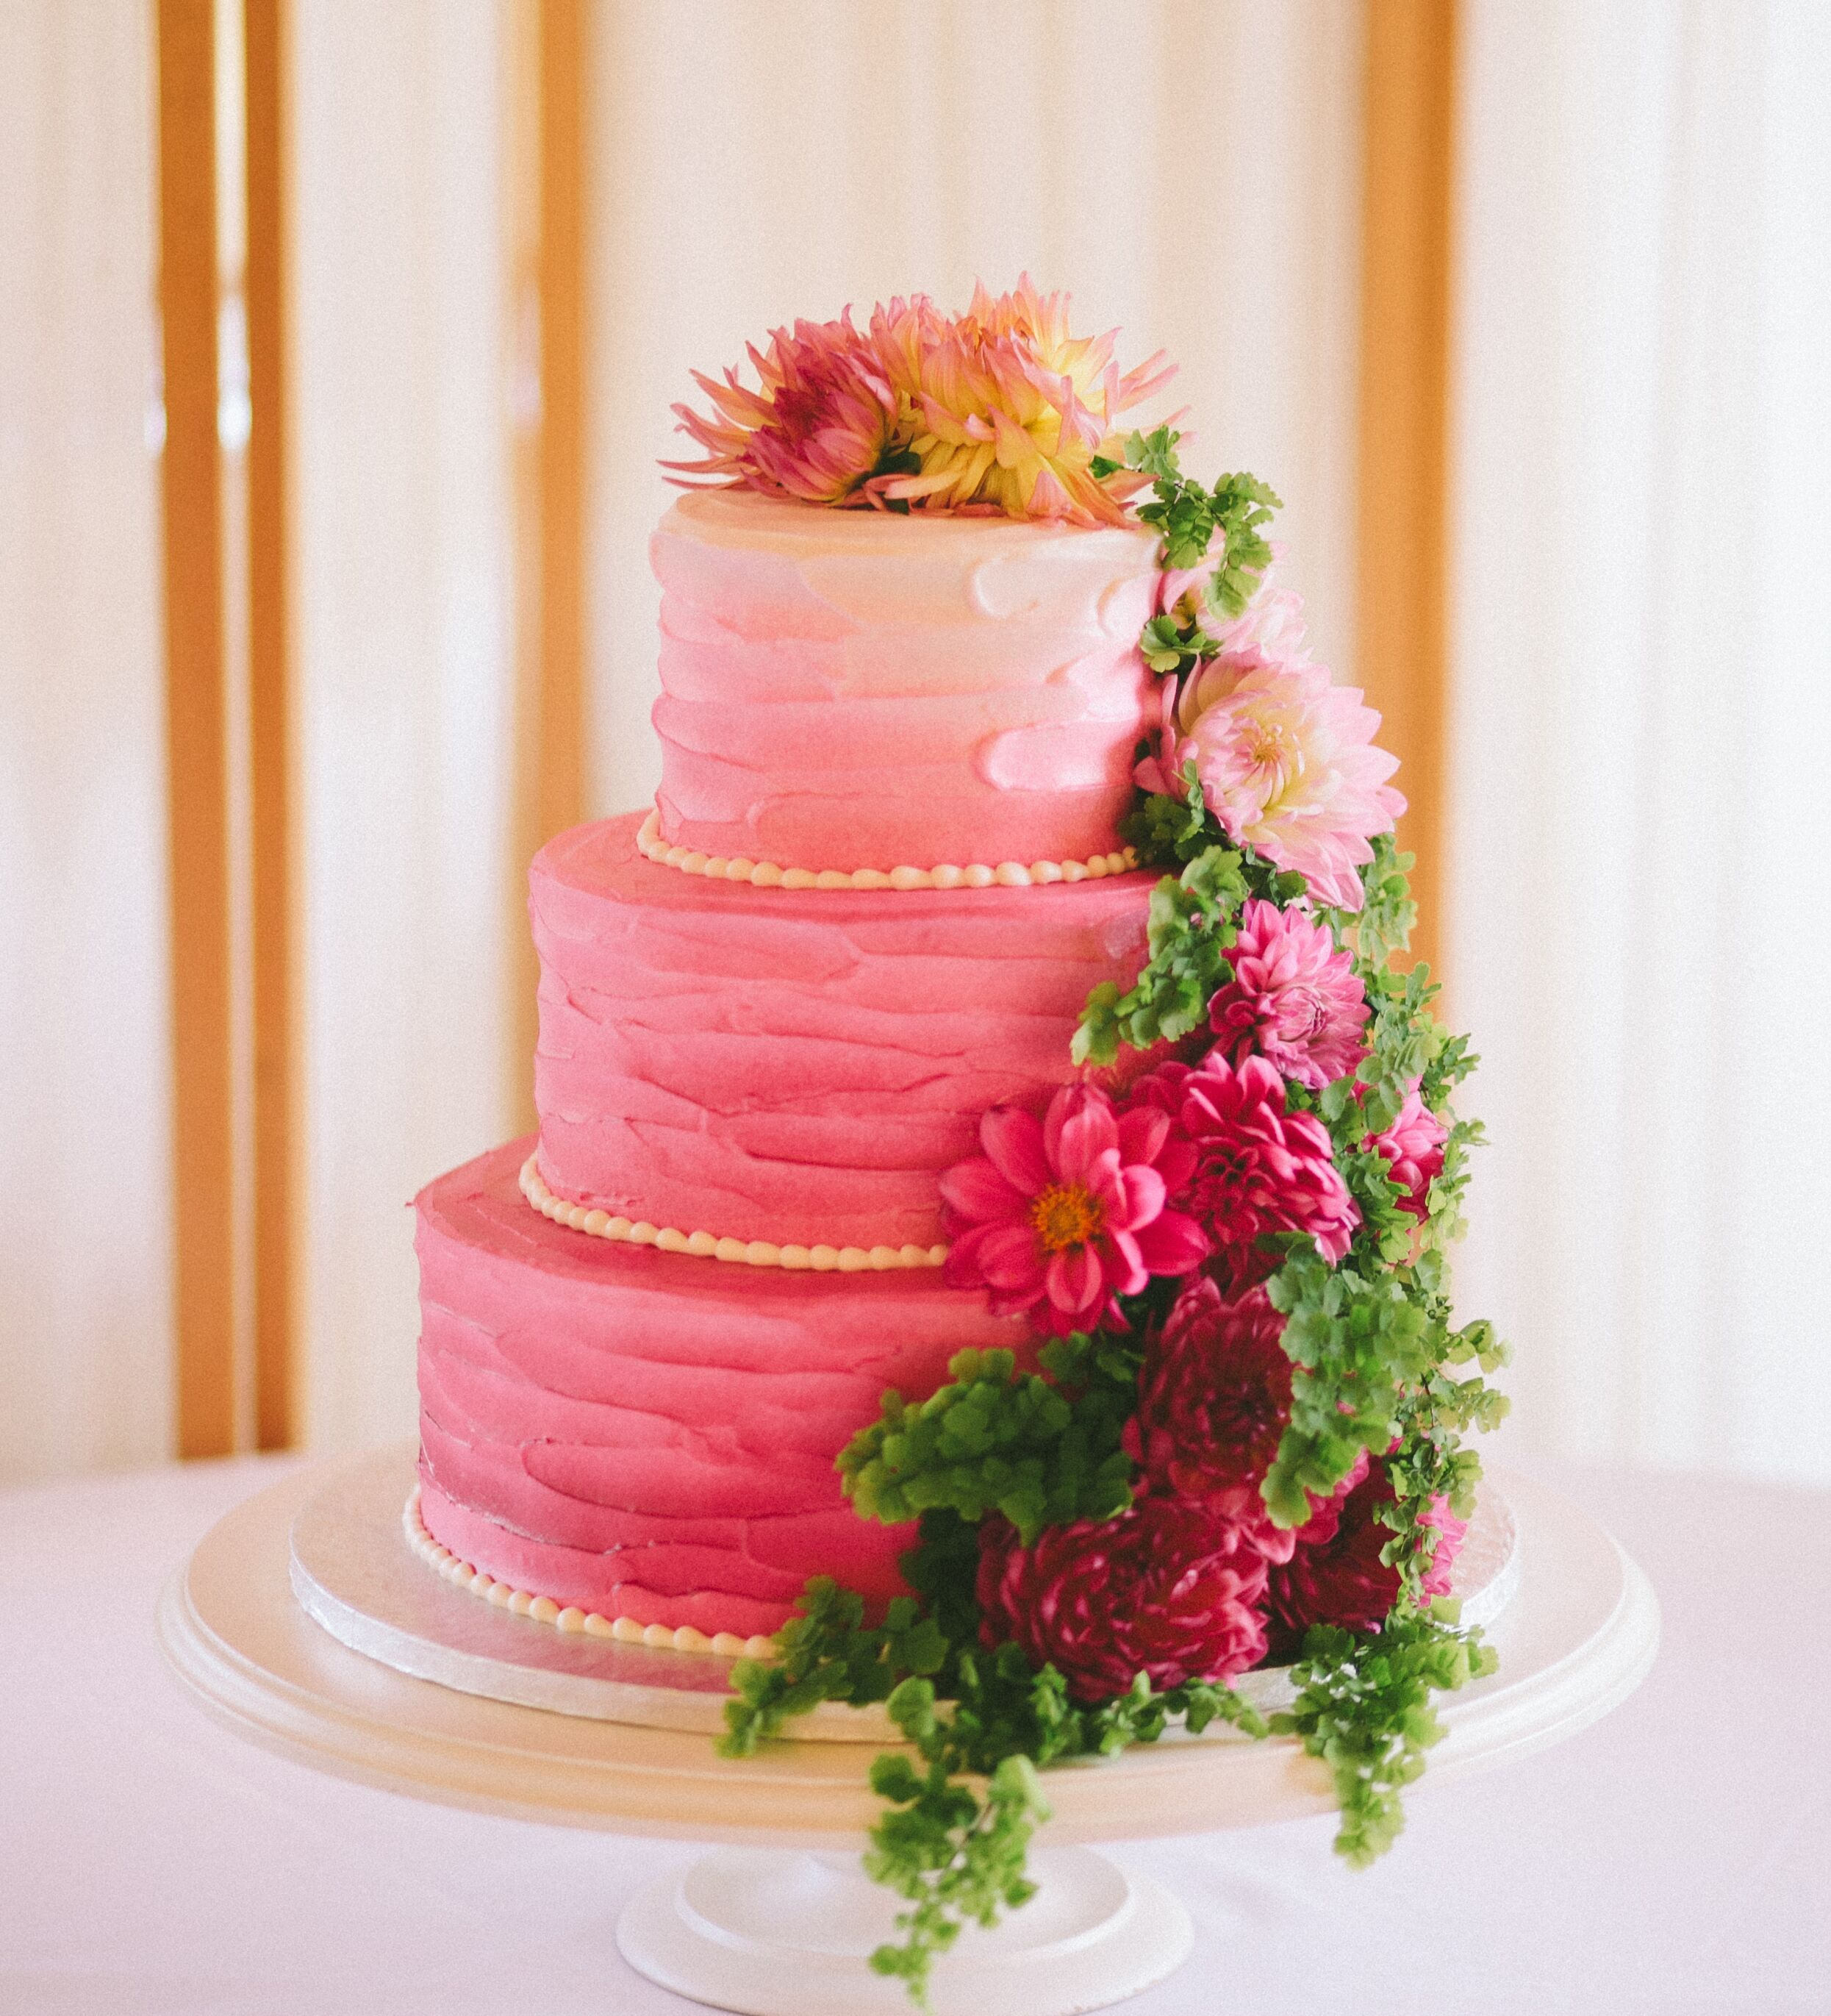 Wedding Cake Bakeries in Monterey, CA - The Knot